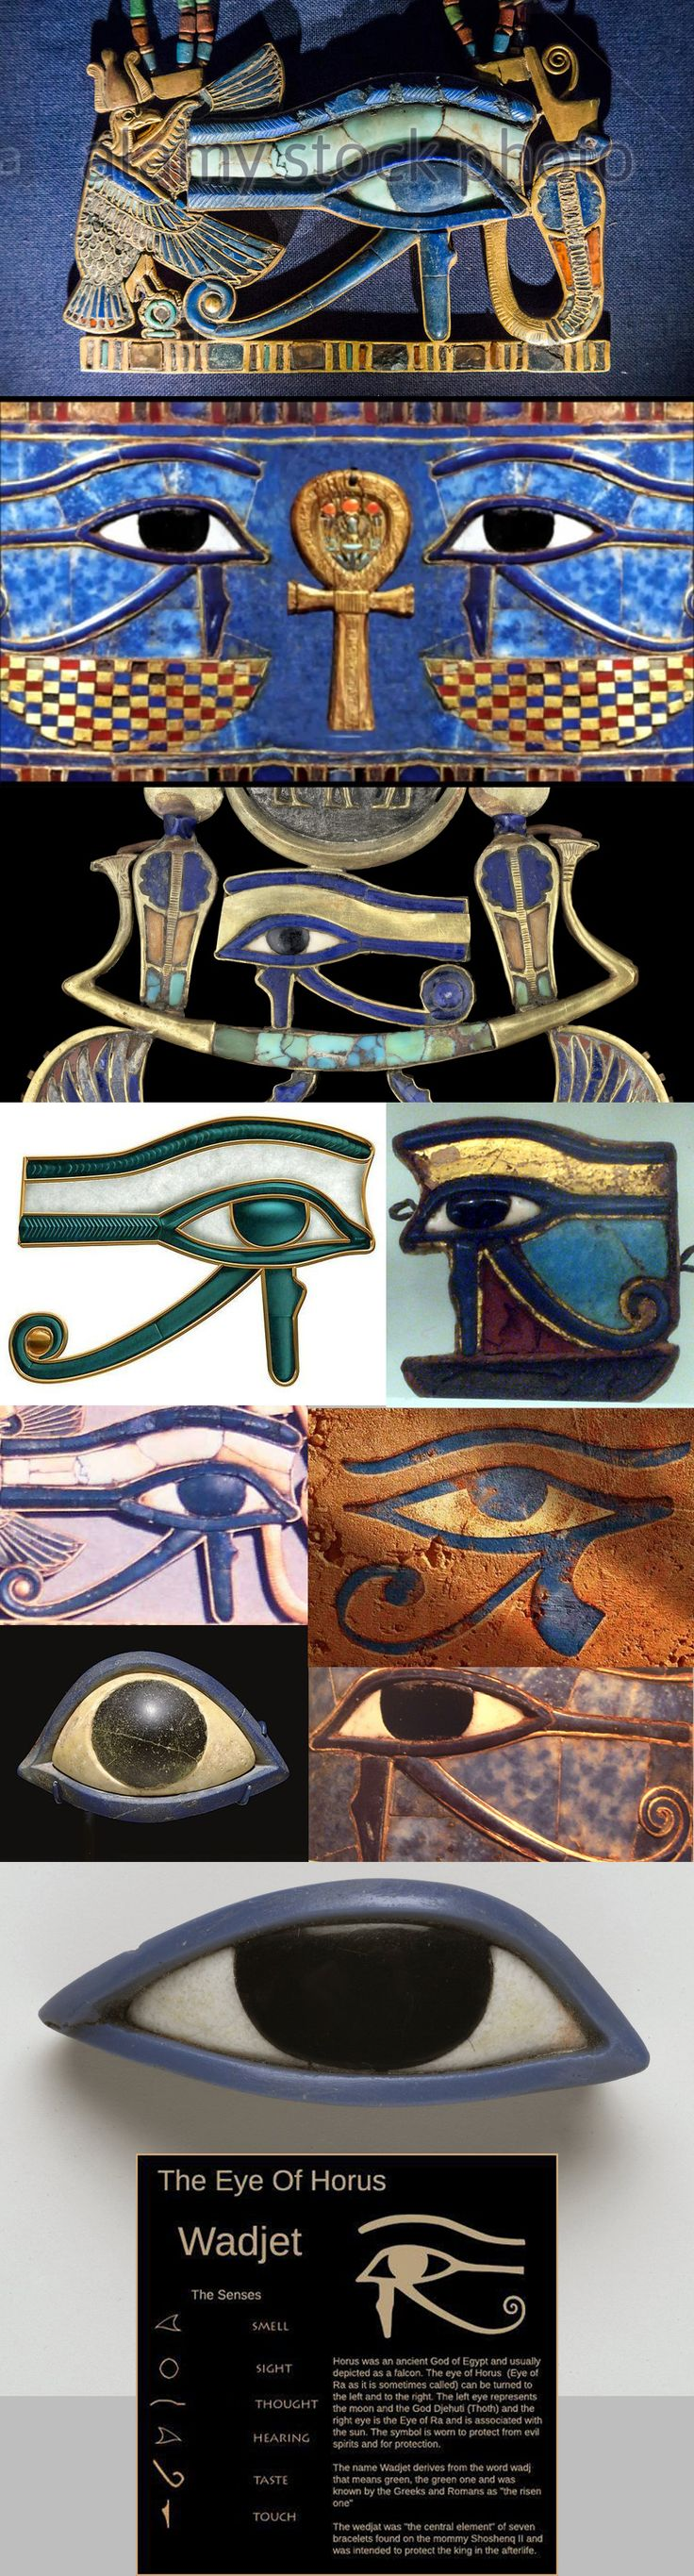 Chapter 2 Part 2 Eye makeup in Egyptian culture was worn mainly by royalty and leaders. Eyes were thought to protect against illness and were a part of their spiritual beliefs.